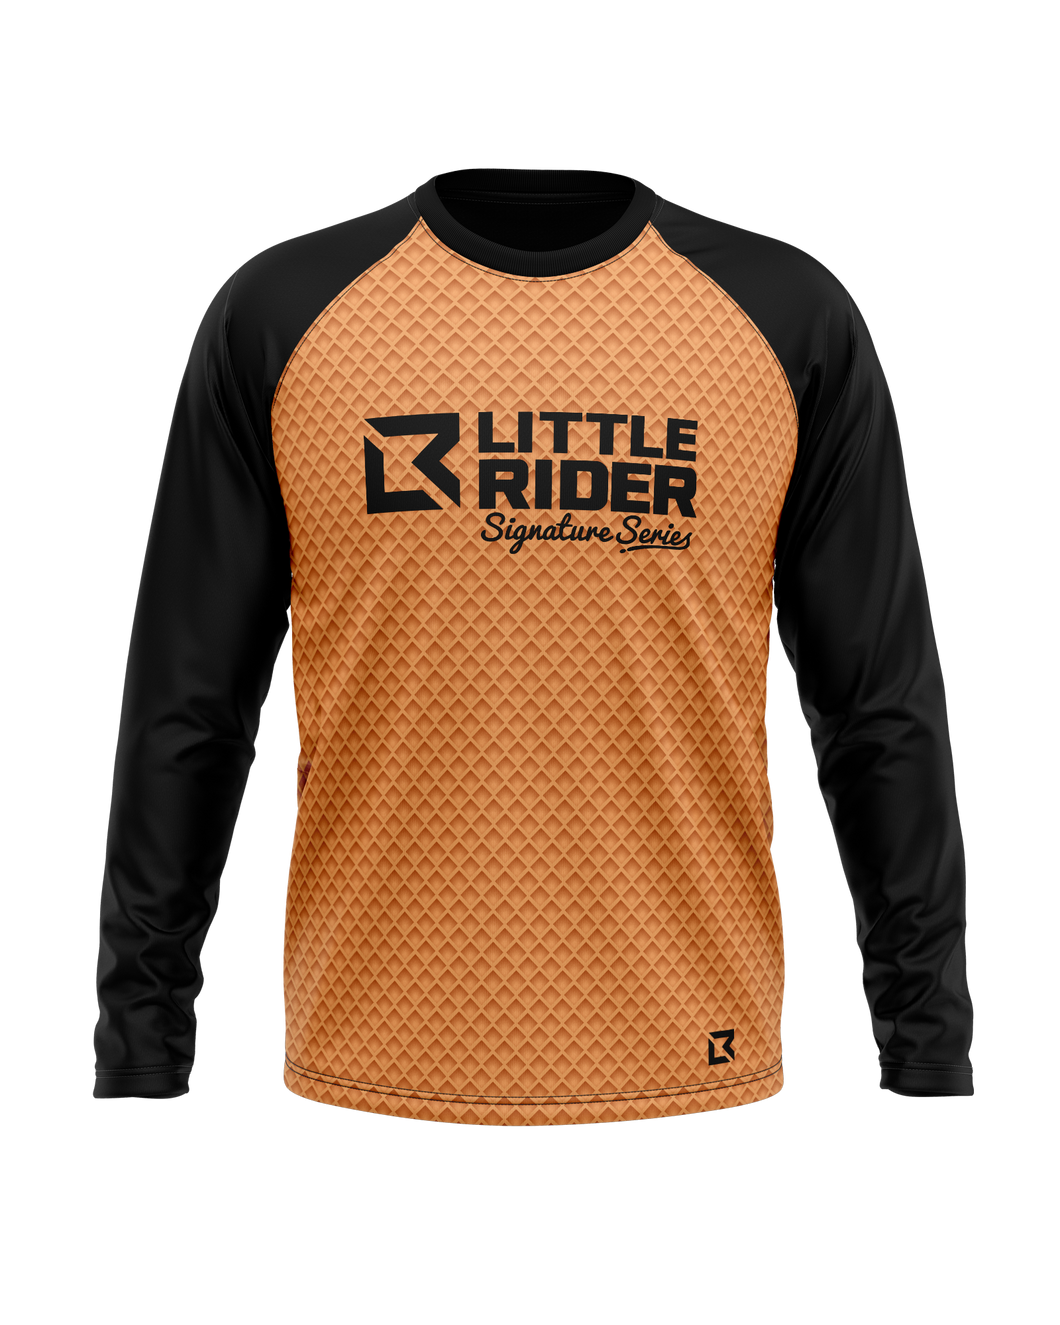 Little Rider Co 'Gummy Waffle' Jersey - Signature Series (LIMITED EDITION)